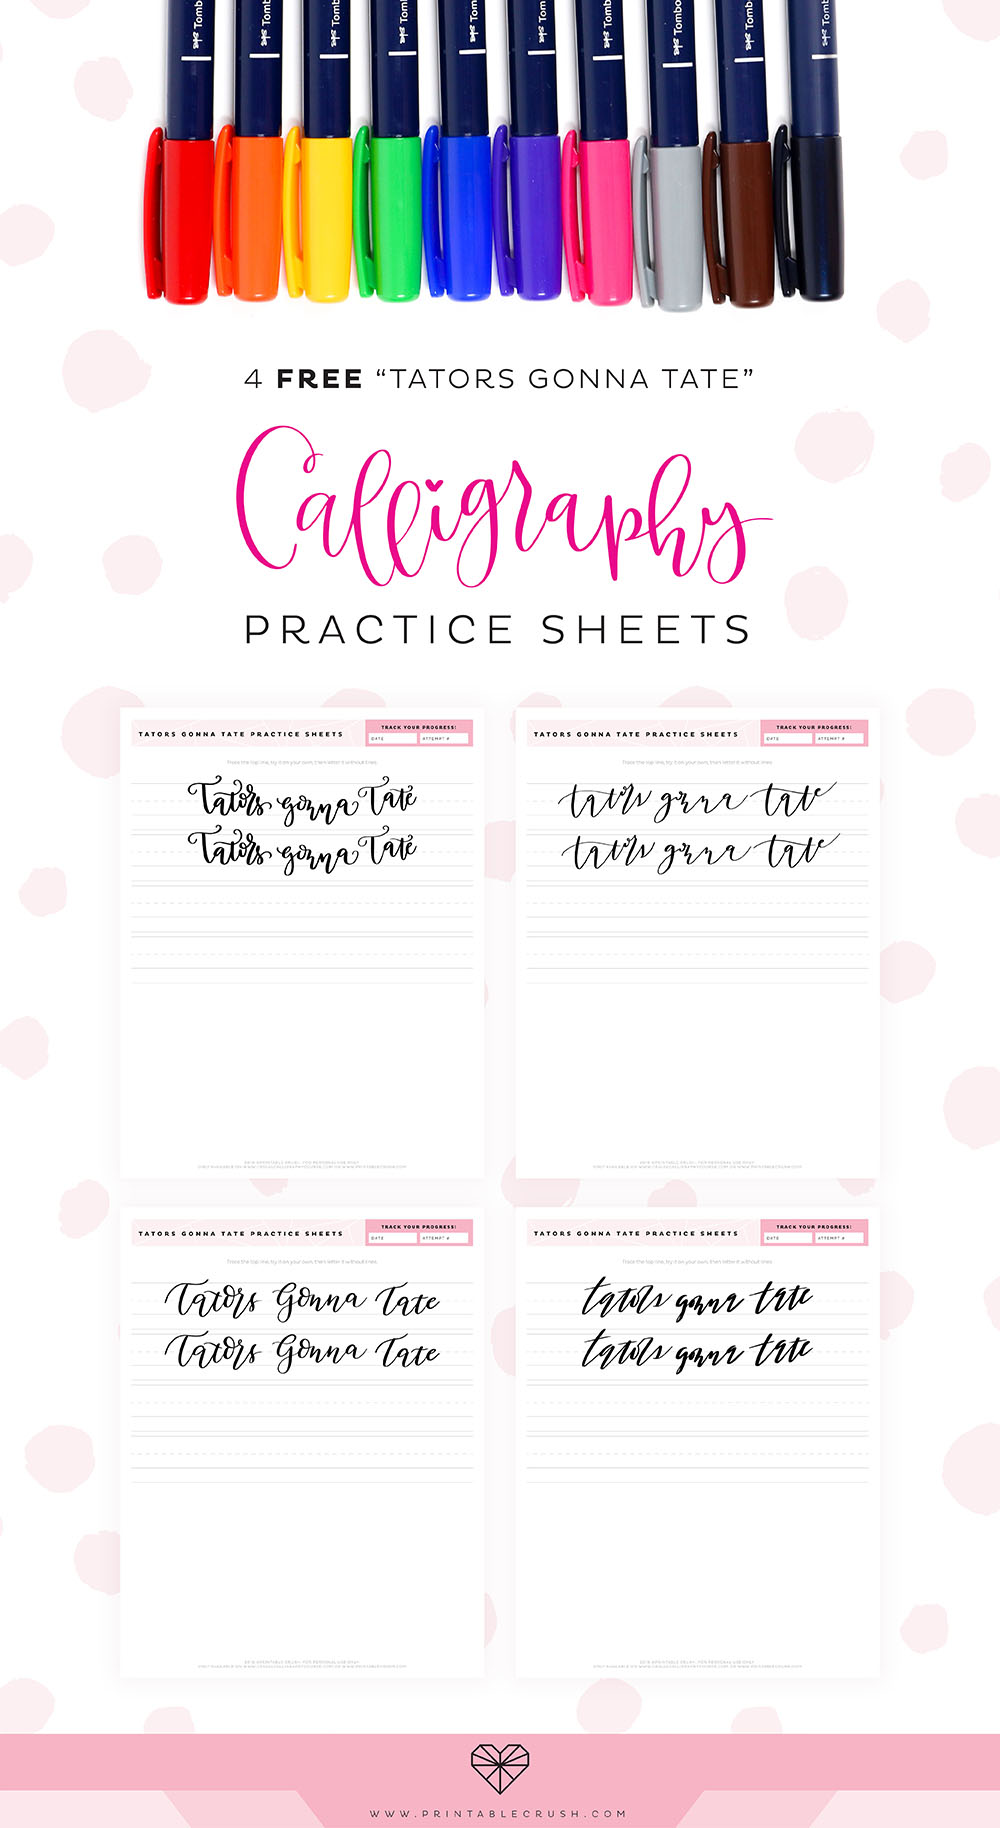 Download these FREE Tators Gonna Tate Calligraphy Practice Sheets to improve your calligraphy skills!